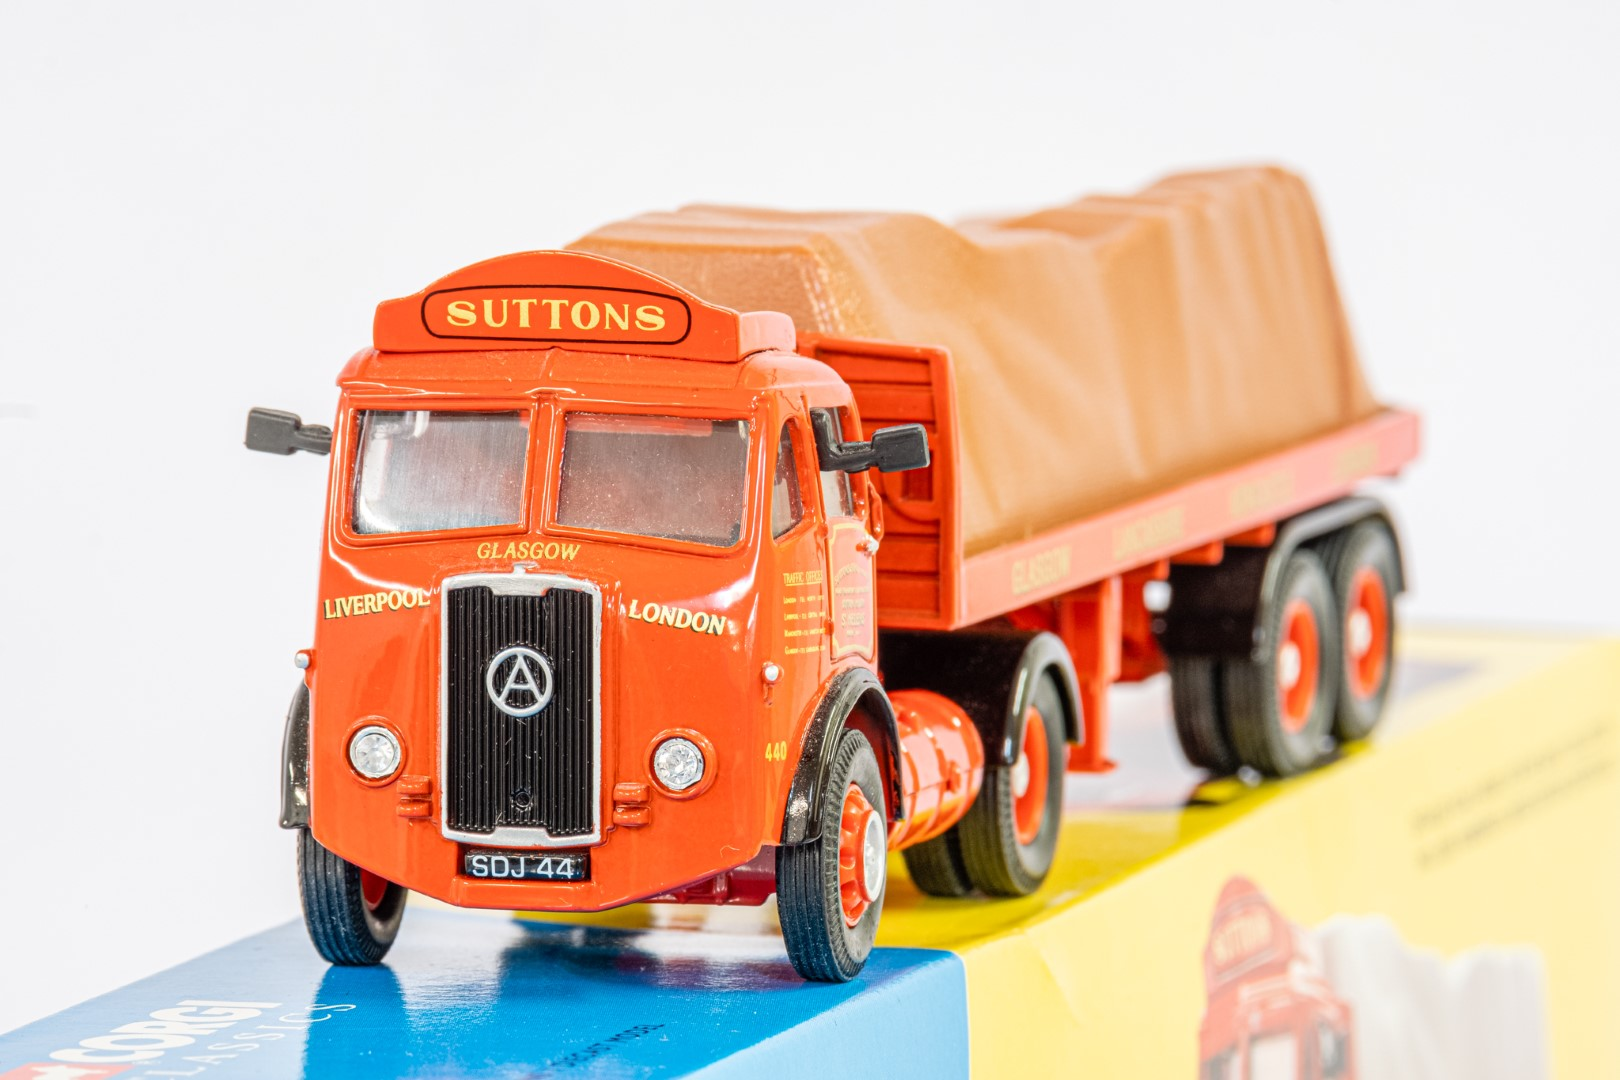 Corgi Atkinson Tractor Unit With Flatbed Trailer - Suttons Of ST Helens - - Image 2 of 2